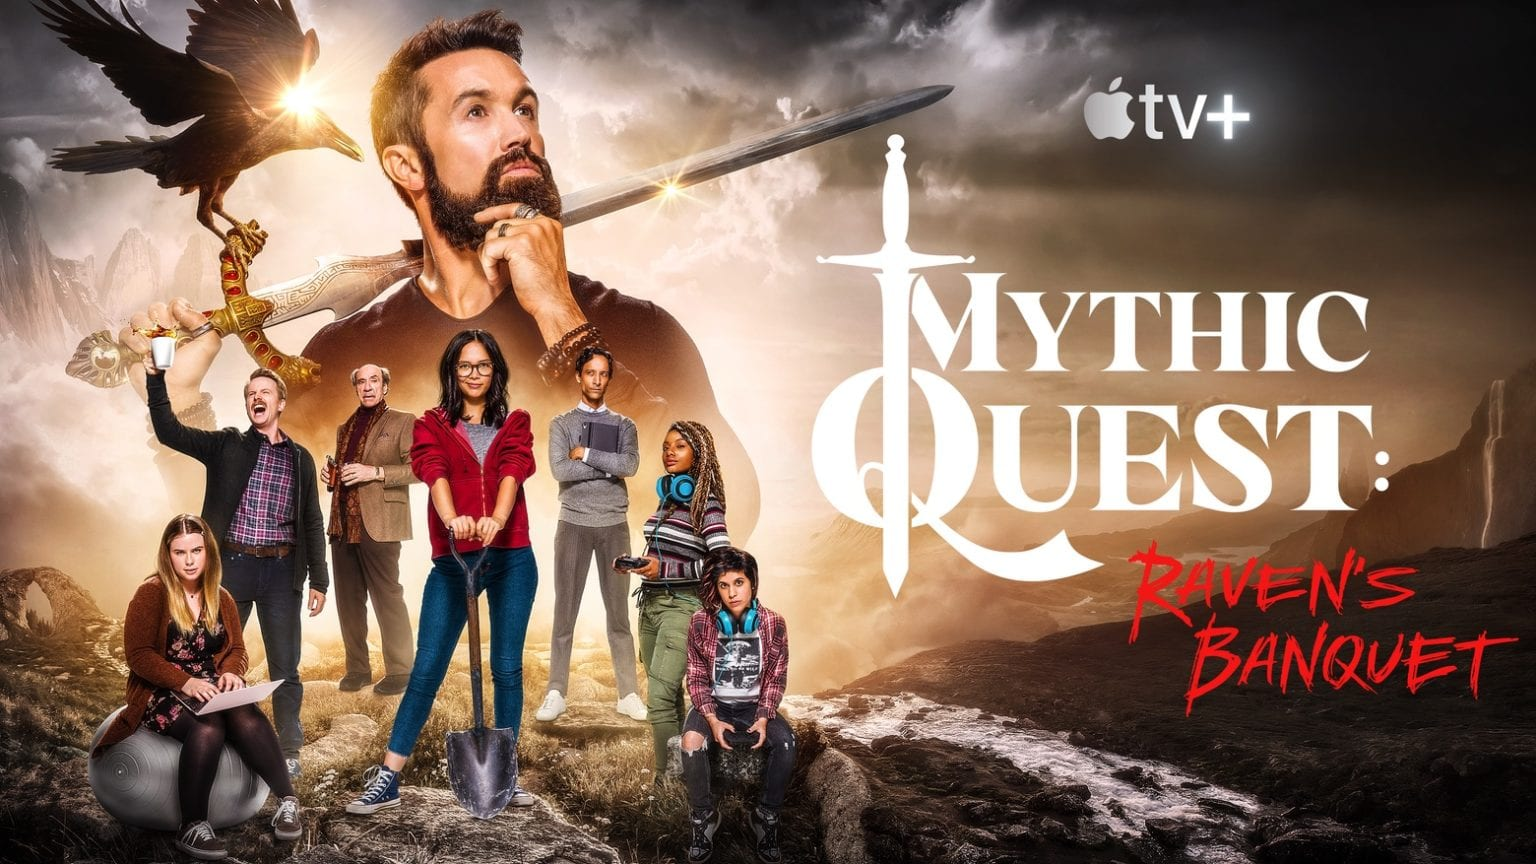 All 9 episodes of Mythic Quest: Raven's Banquet are live on Apple TV+